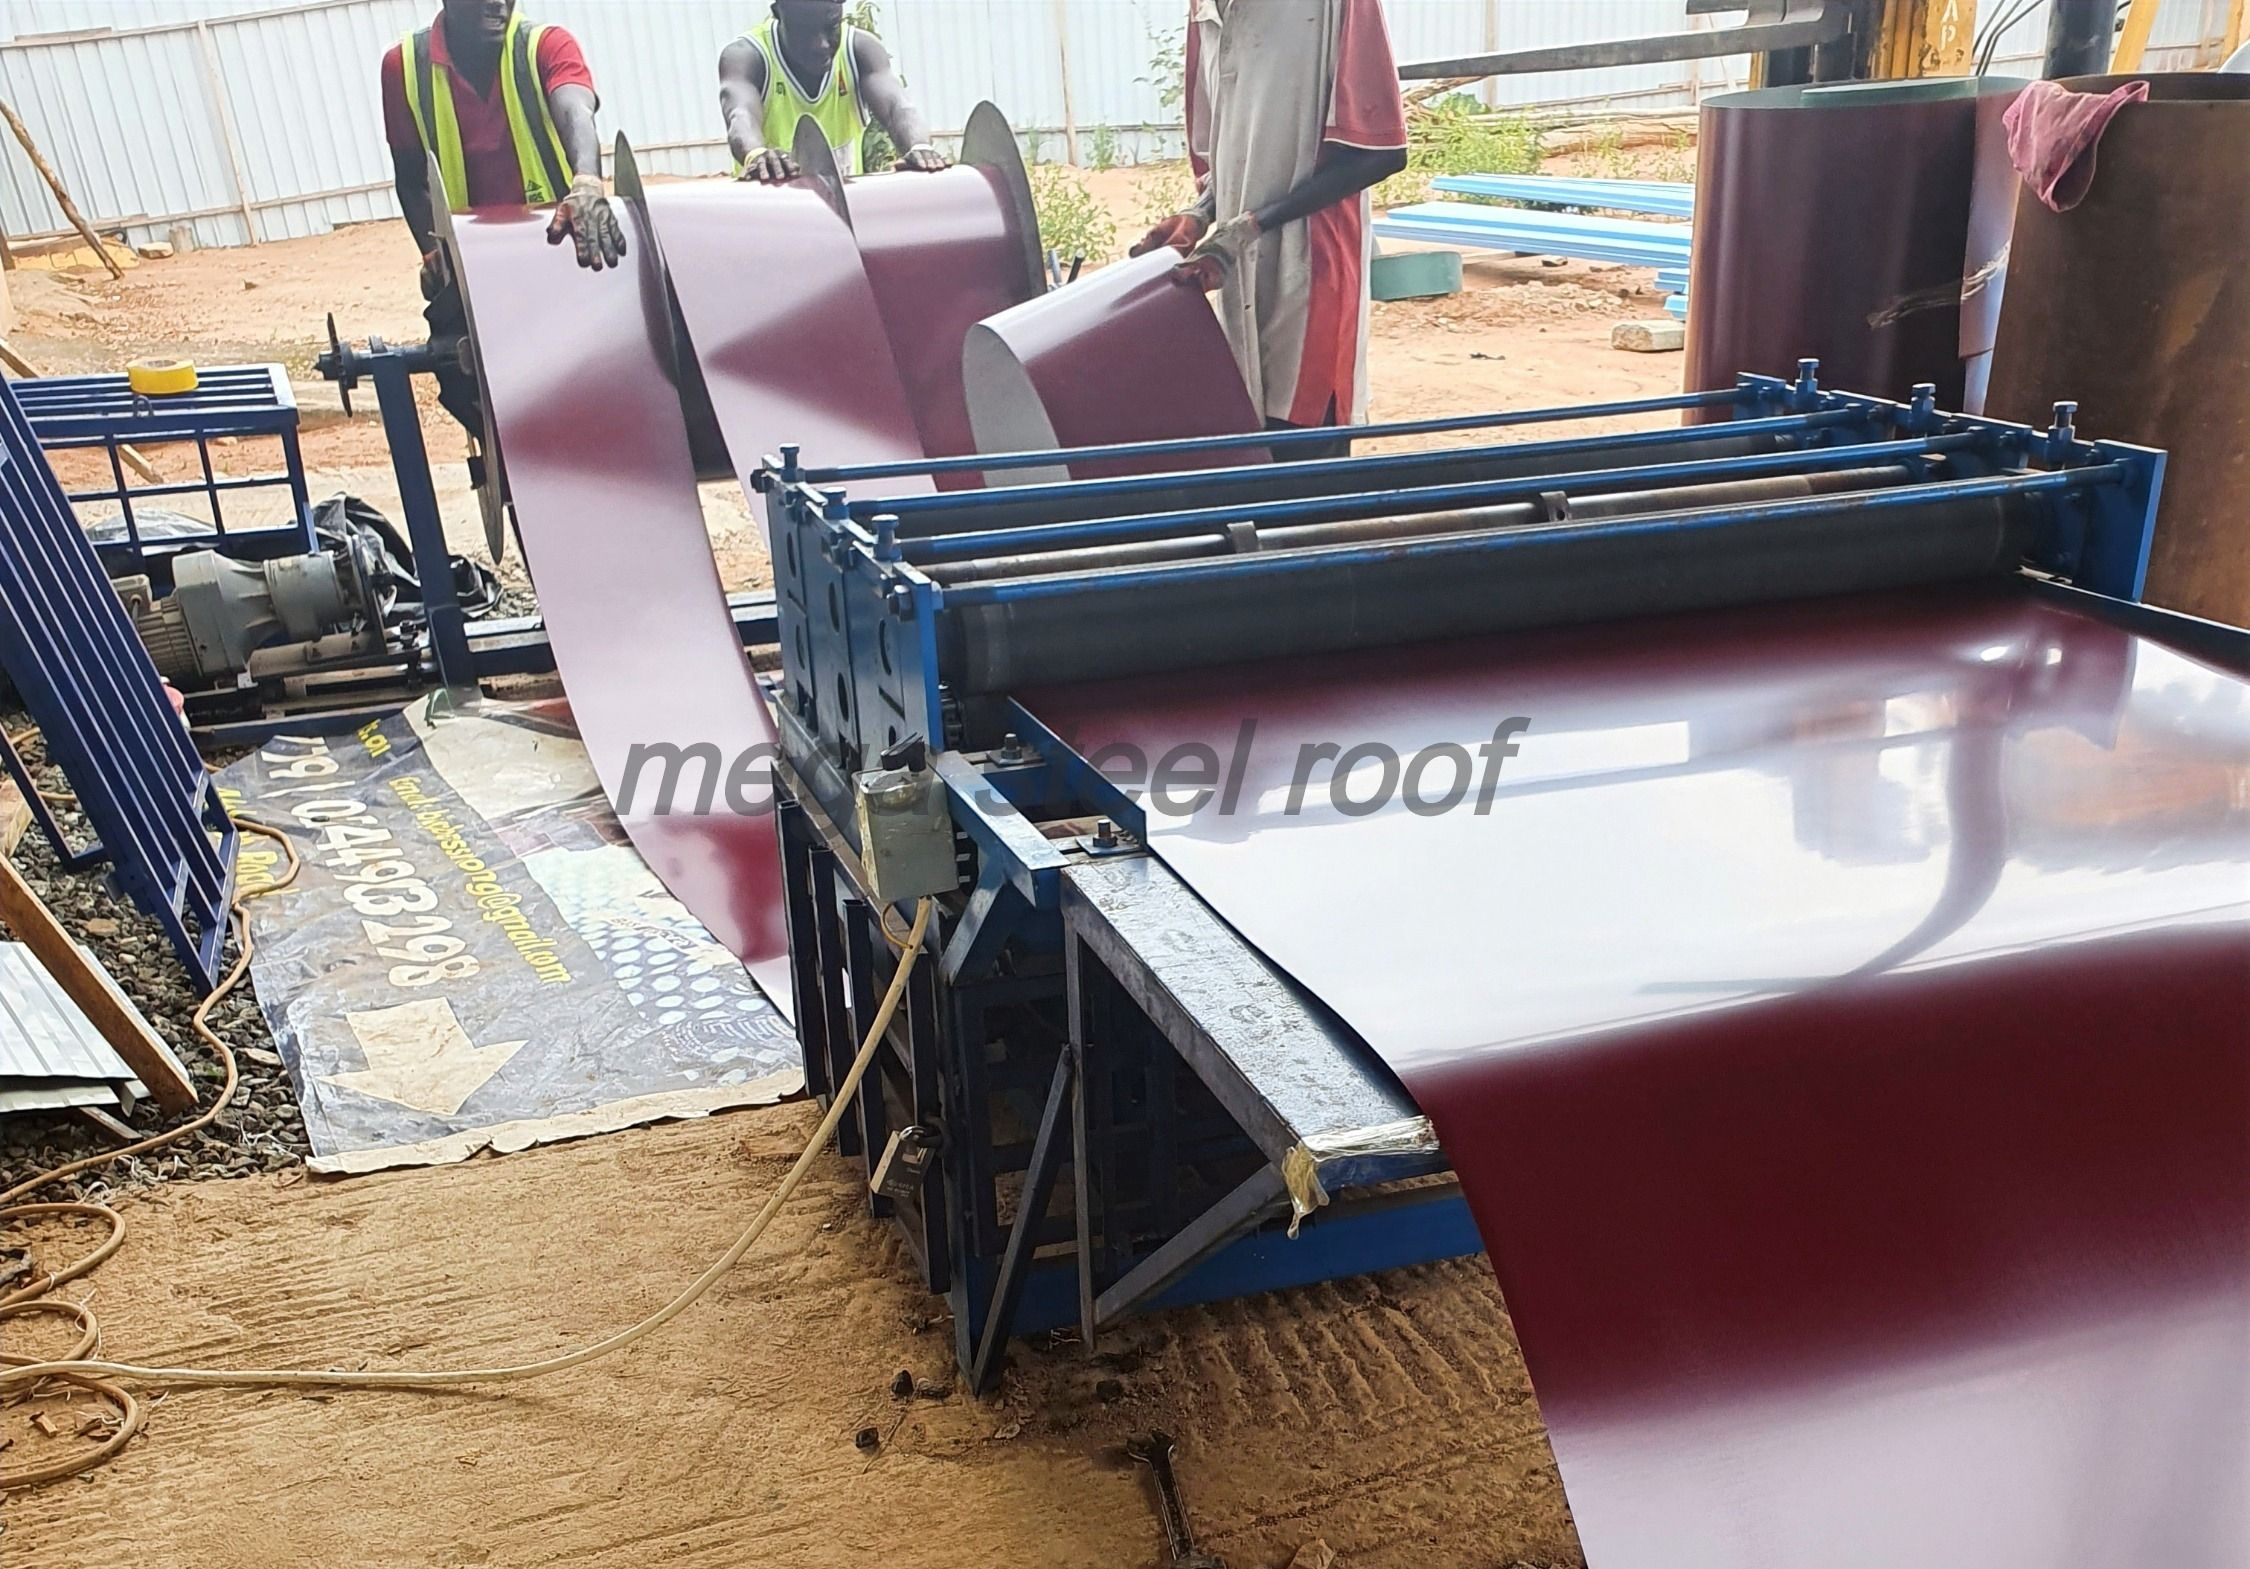 Roofing Sheets And Trusses Is 1 Among Roofing Companies In Ghana In 2020 Best Roofing Company Roofing Systems Roofing Services